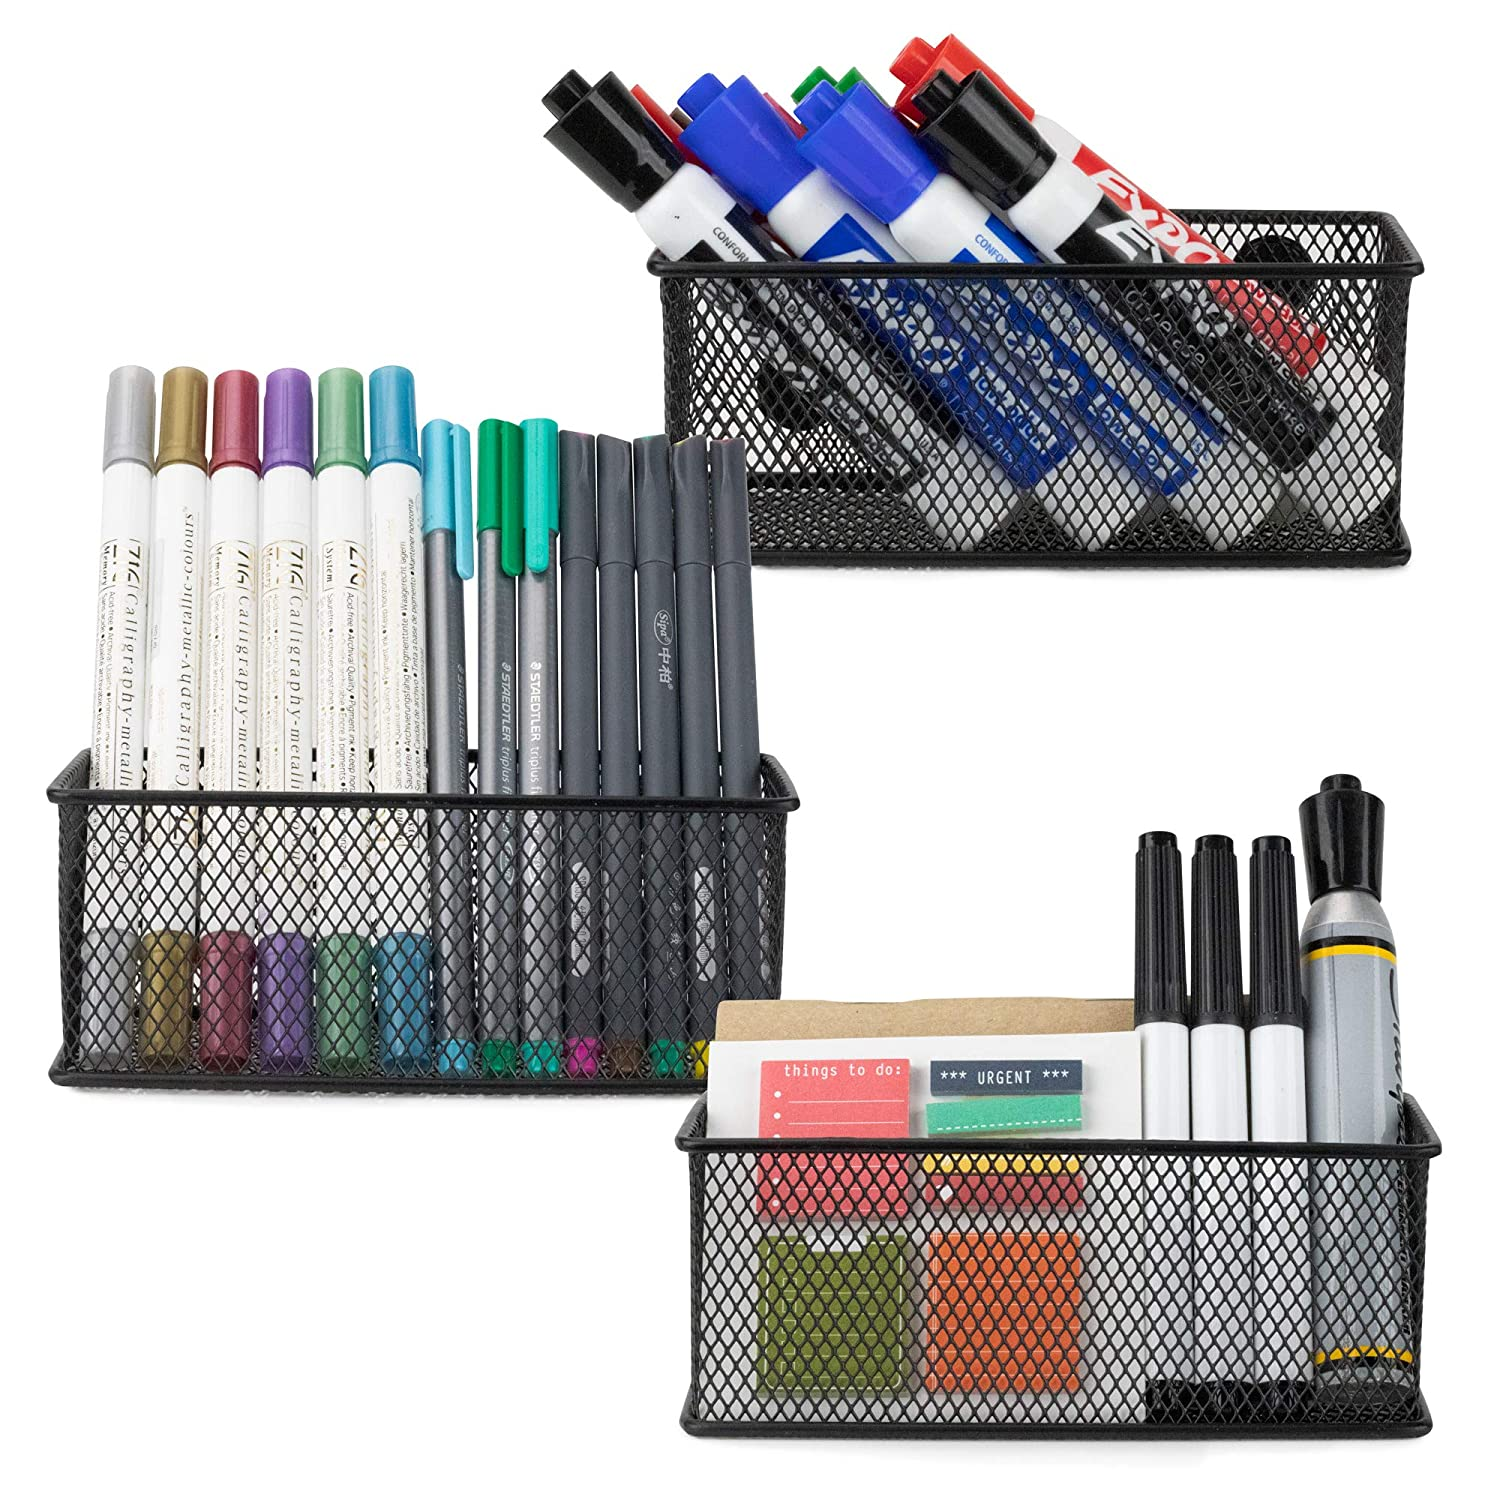 Workablez Magnetic Pencil Holder Set of 3 - Mesh Storage Baskets with Extra Strong Magnets - Perfect Marker and Pen Organizer Set Holds Securely Your Whiteboard and Locker Accessories